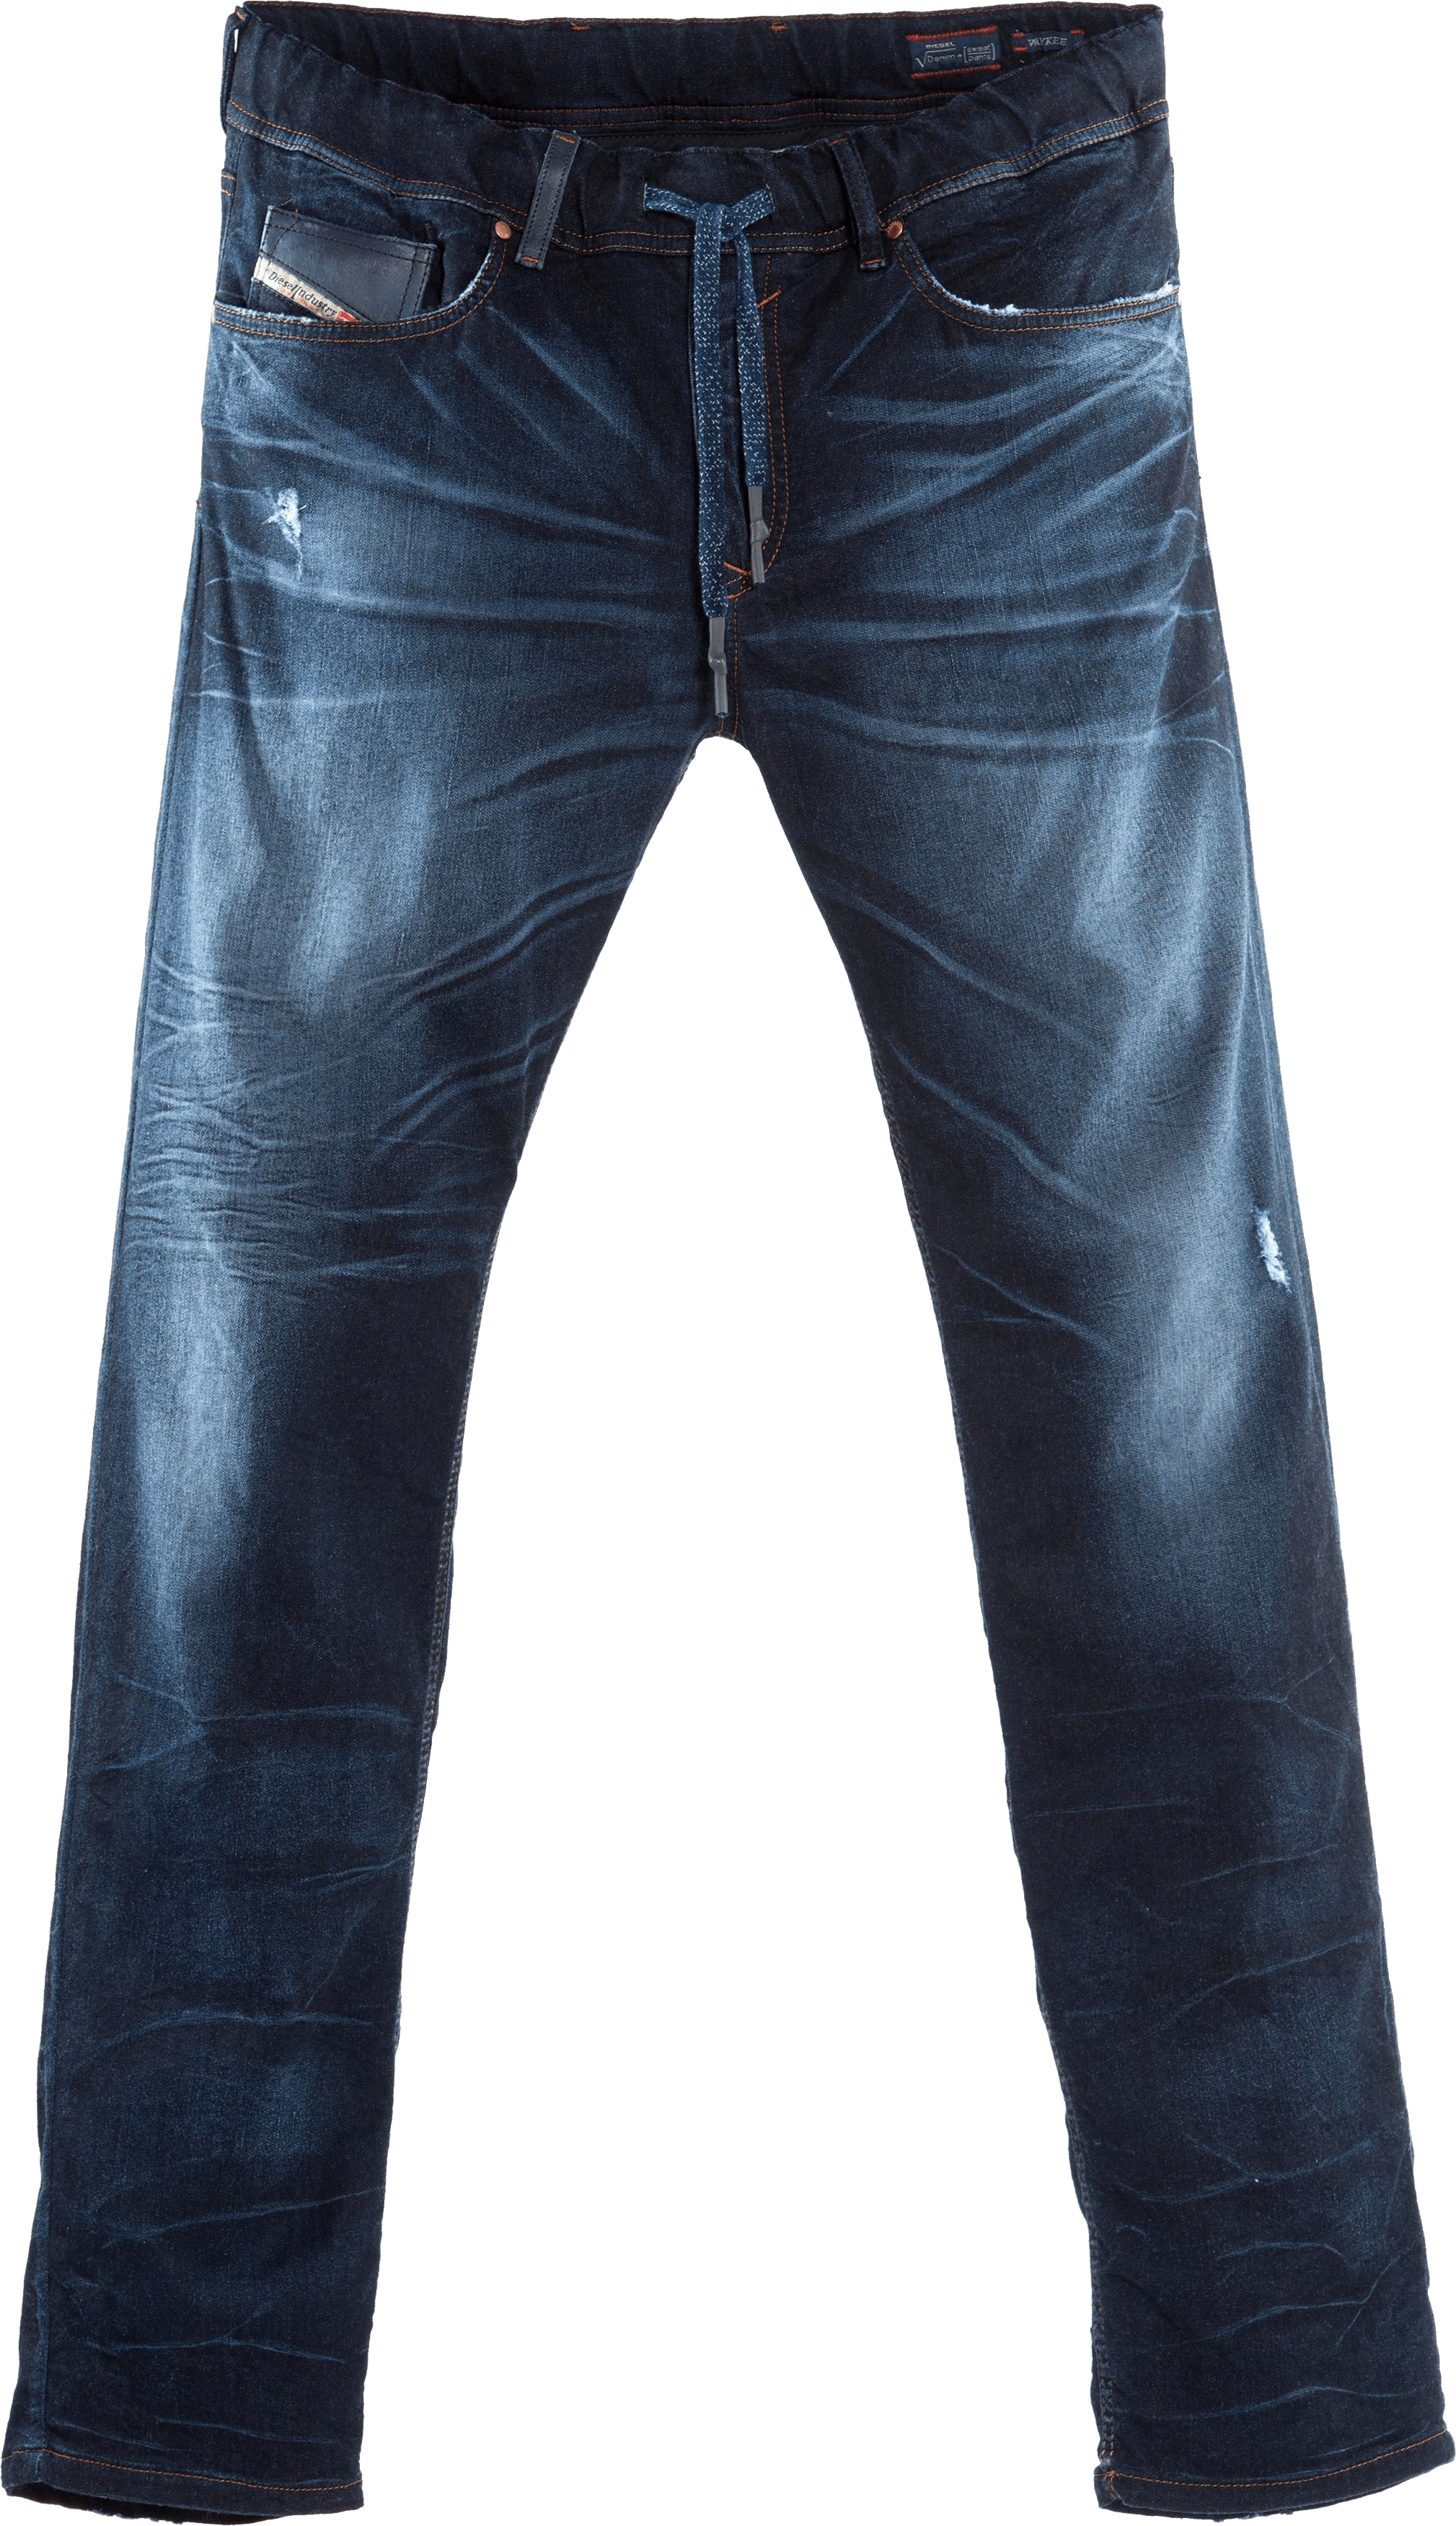 download jeans png image png image pngimg 20465